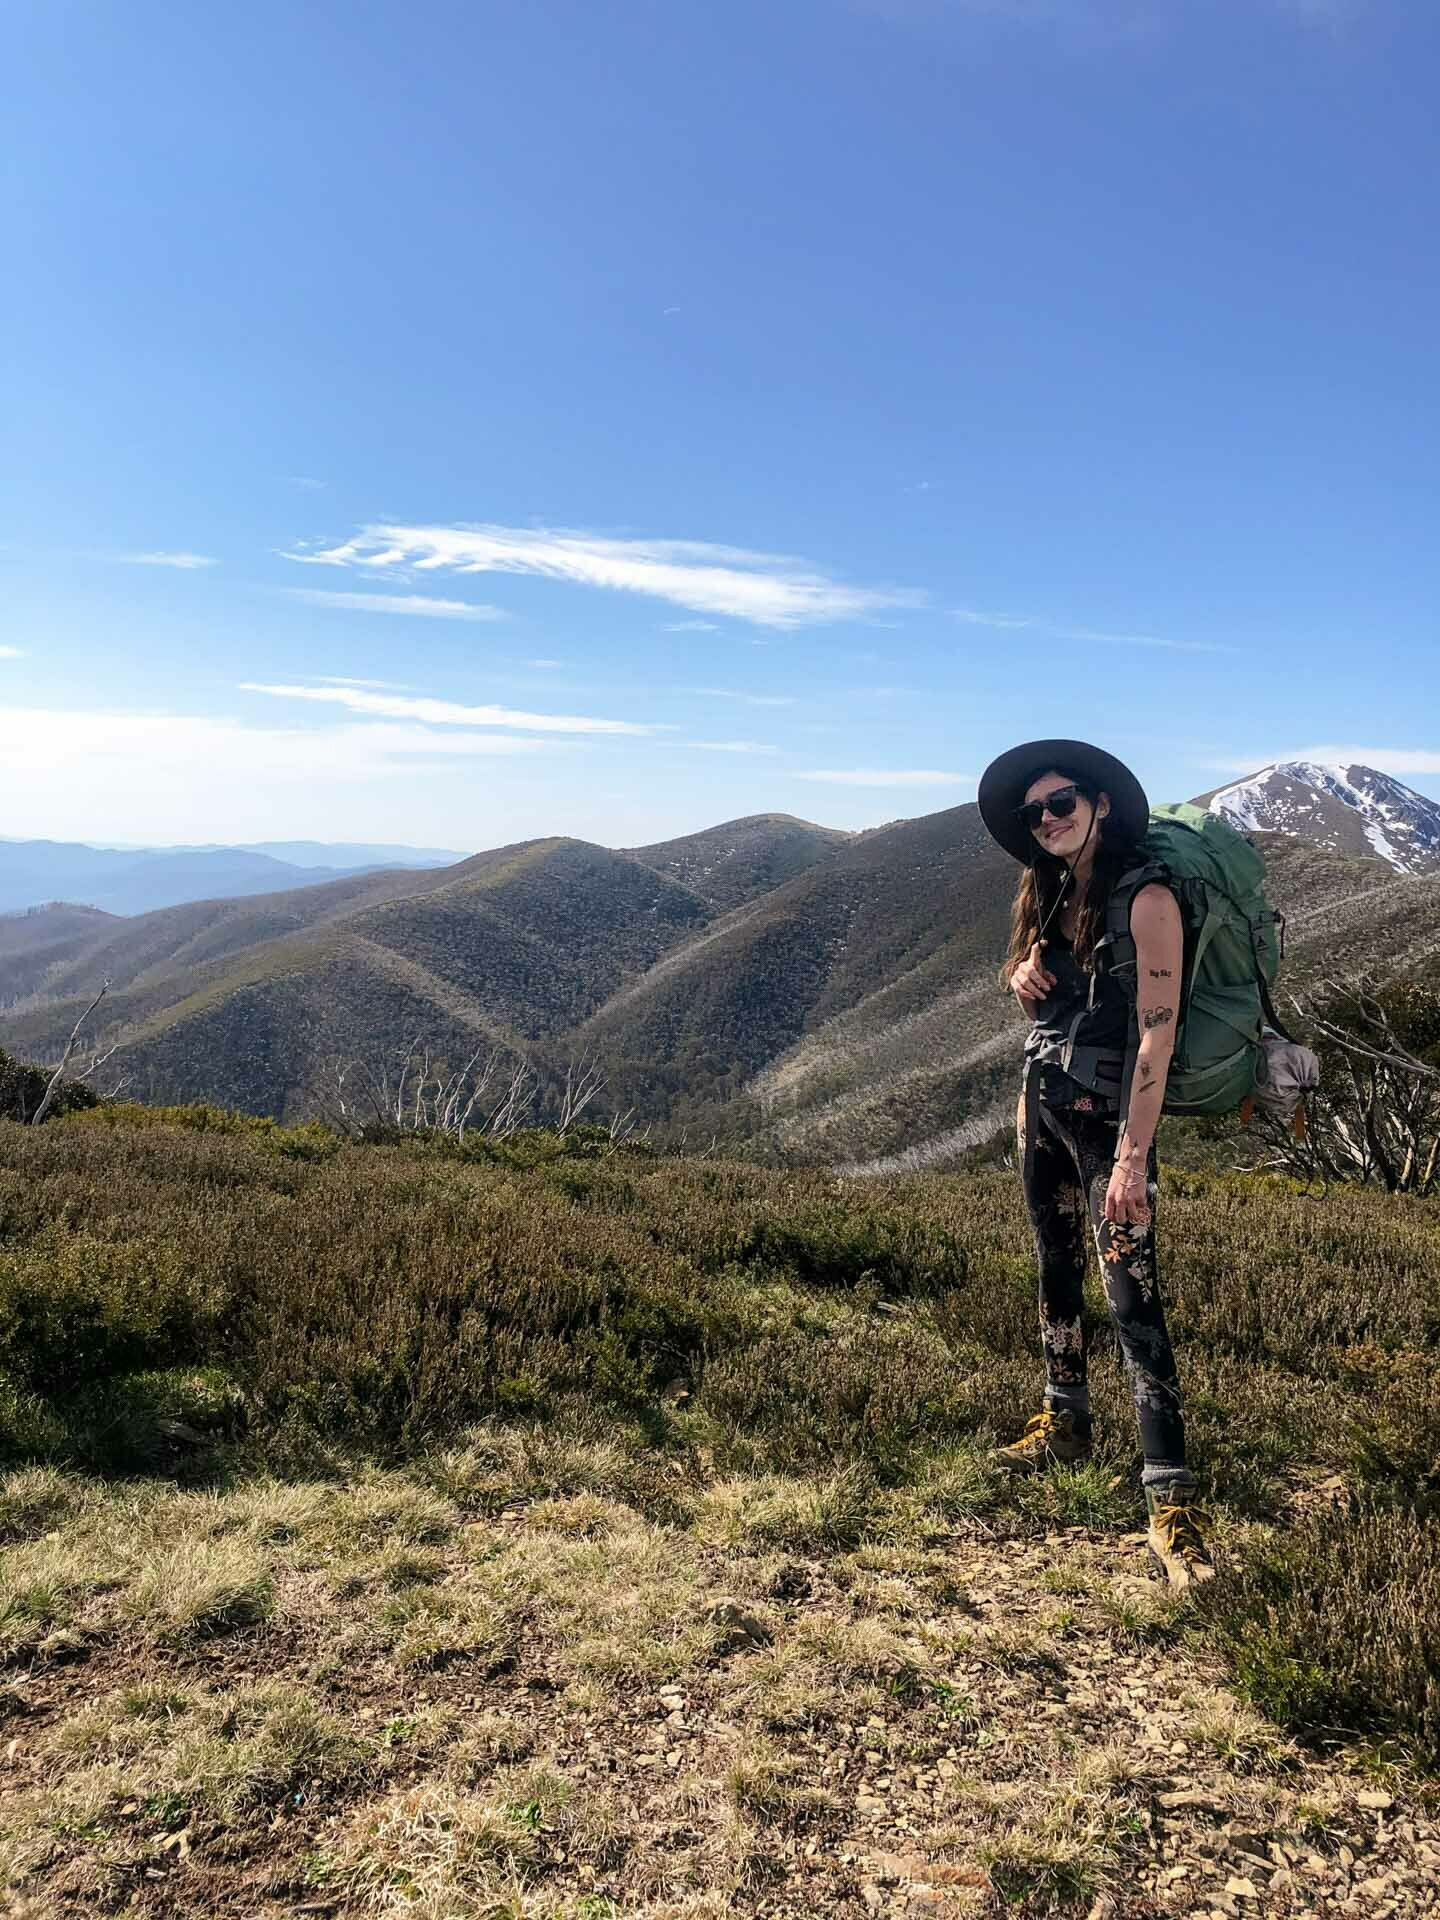 What's It Like To Be LGBTQIA+ and an Explorer? Jade Lane